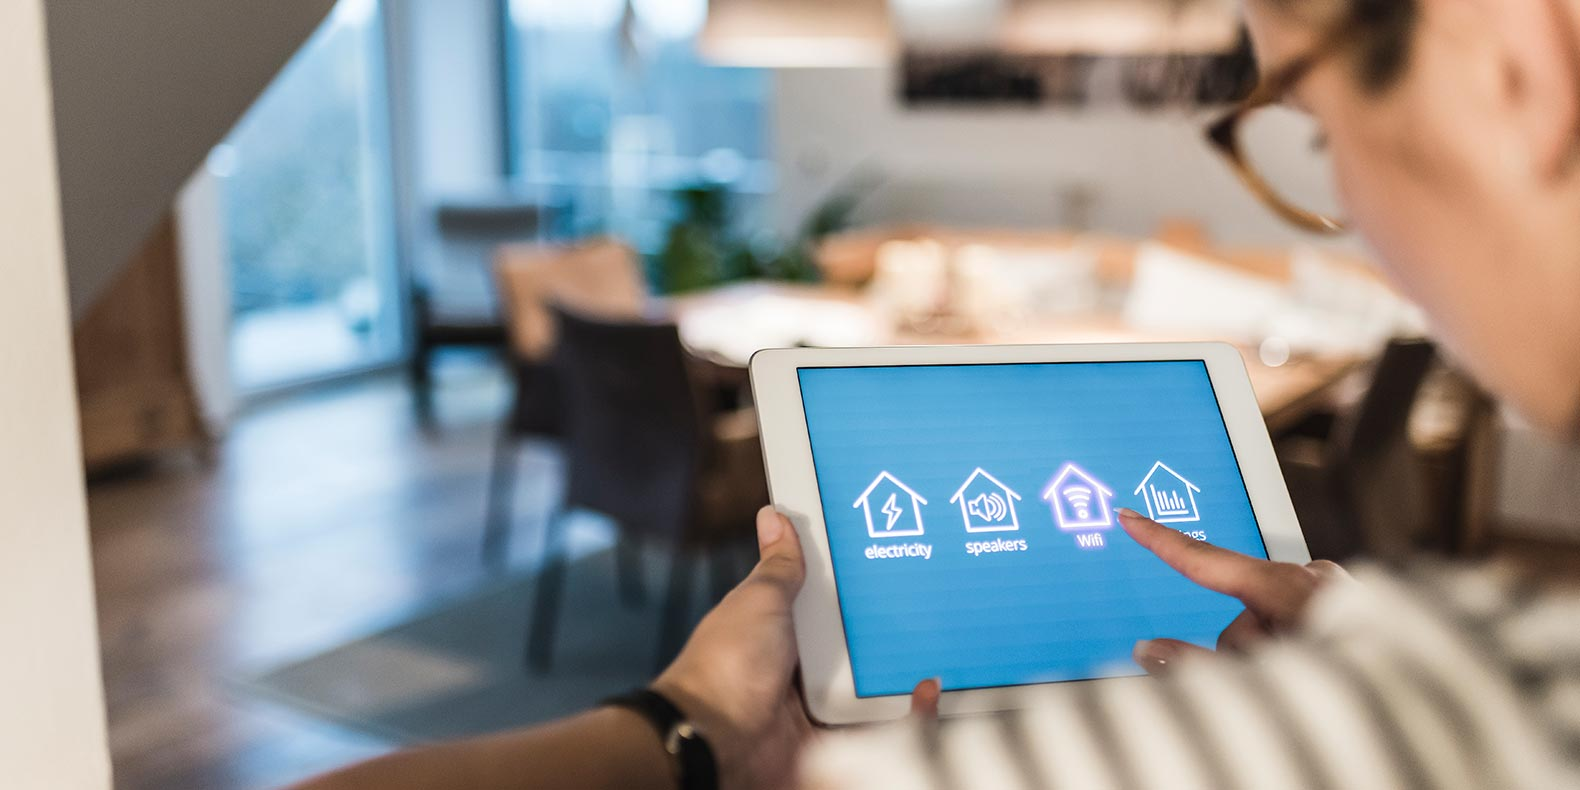 How to Make a Smart Home